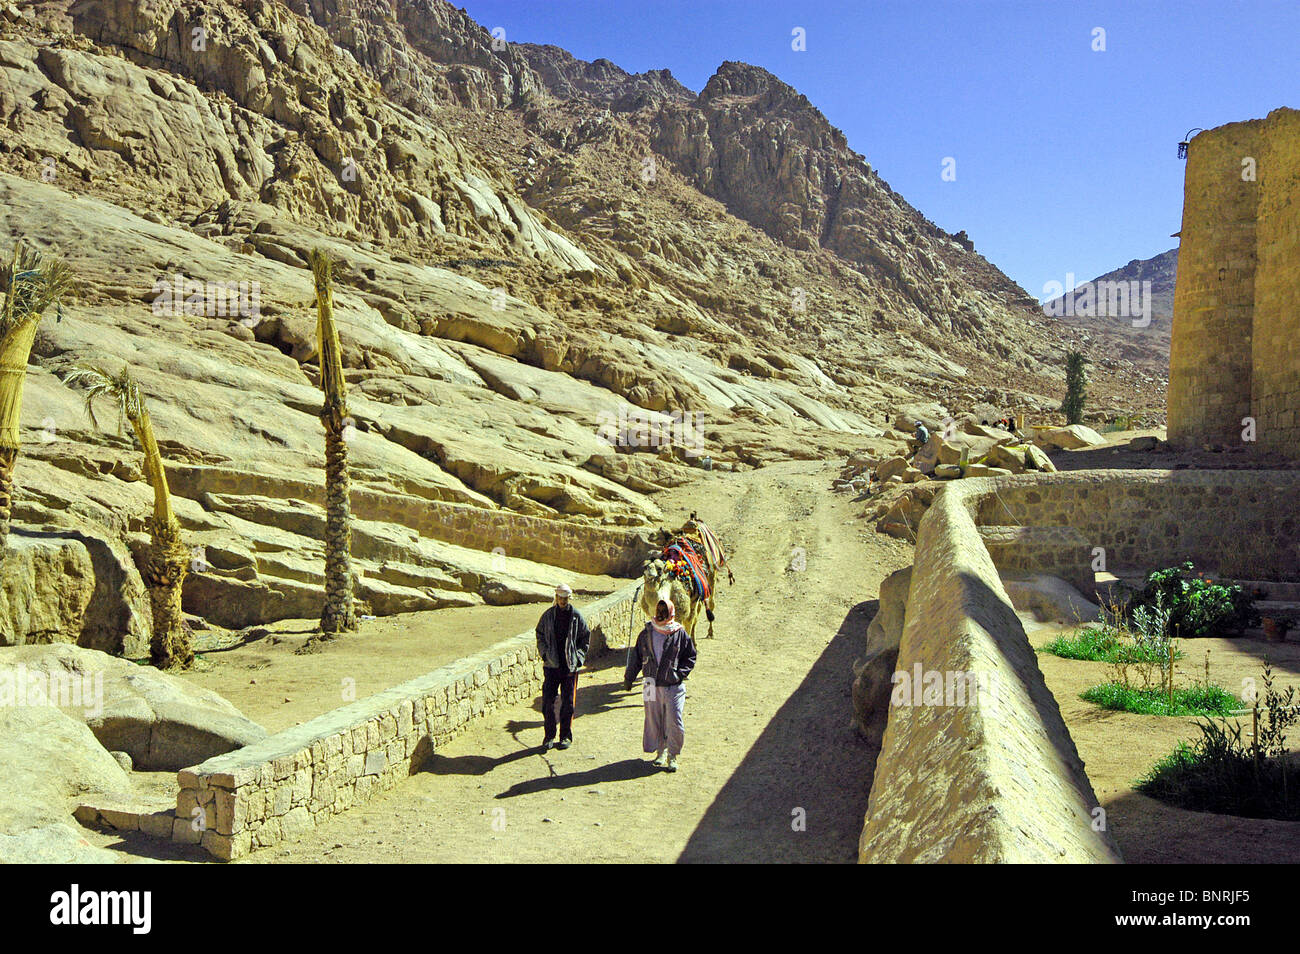 Local life outside St. Catherine's Monastery in the rocky mass of Sinai. Stock Photo